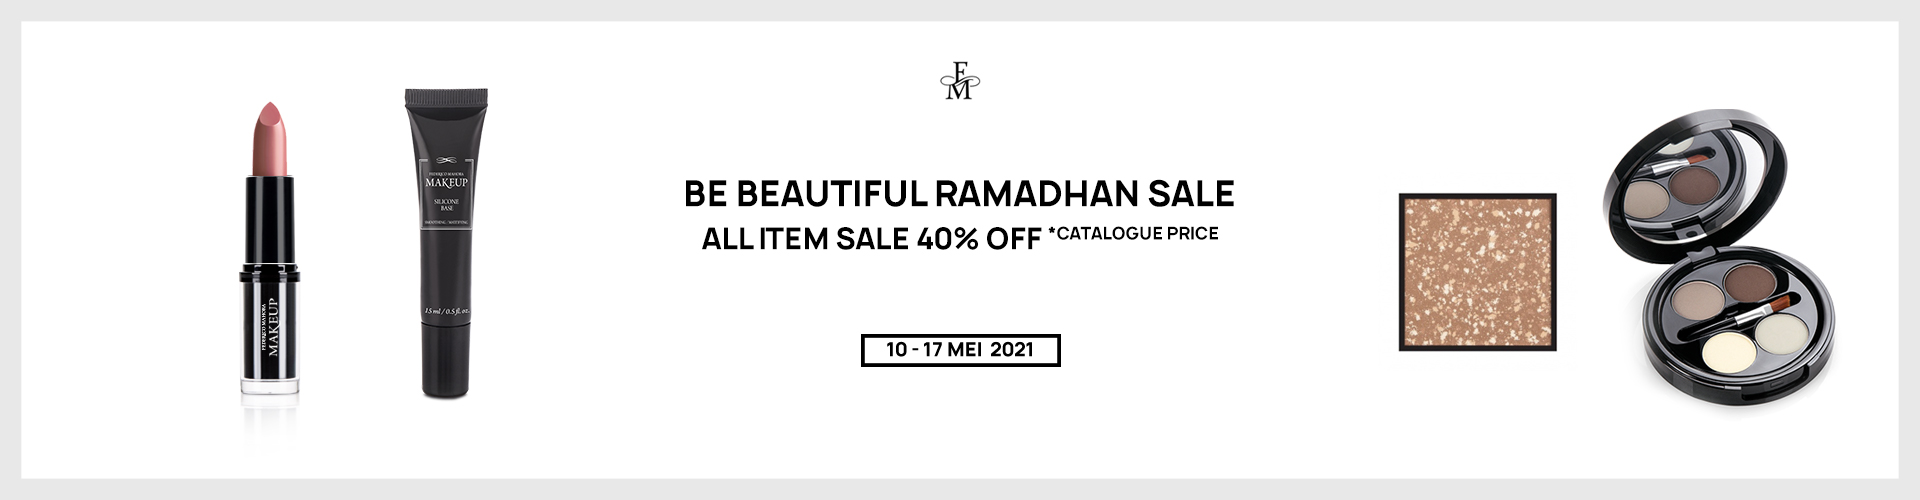 BE BEAUTIFUL RAMADHAN SALE